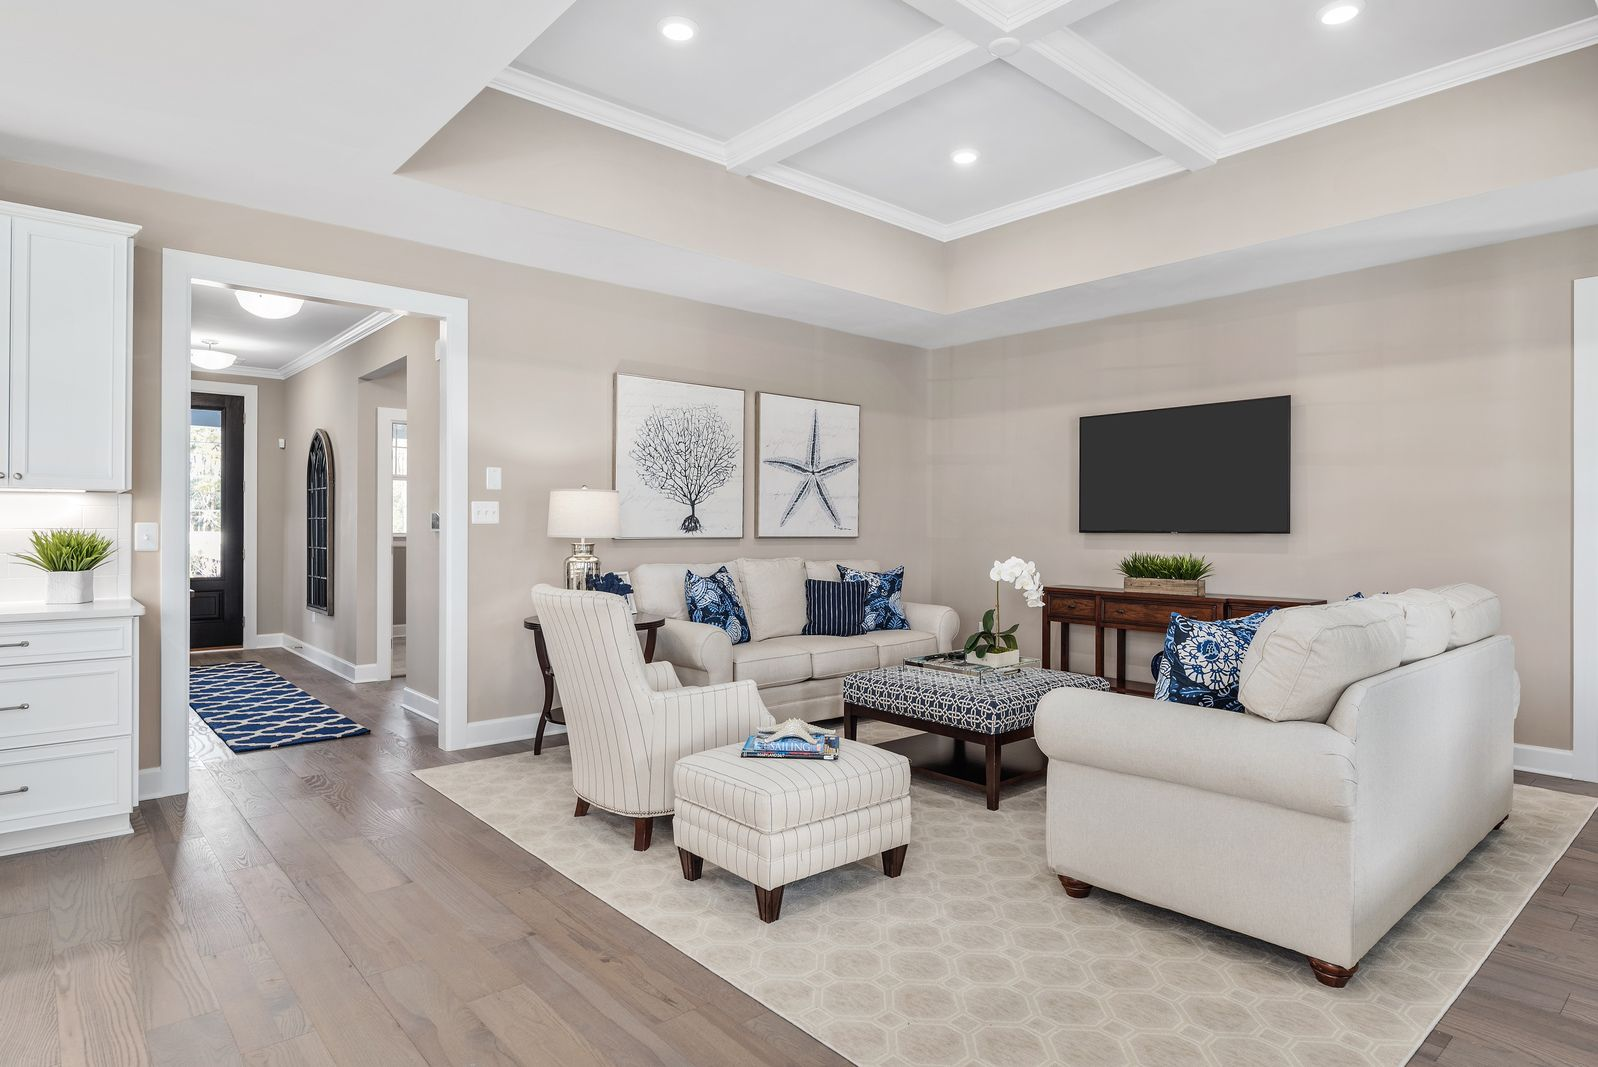 Living Area featured in the Edgewood By NVHomes in Sussex, DE